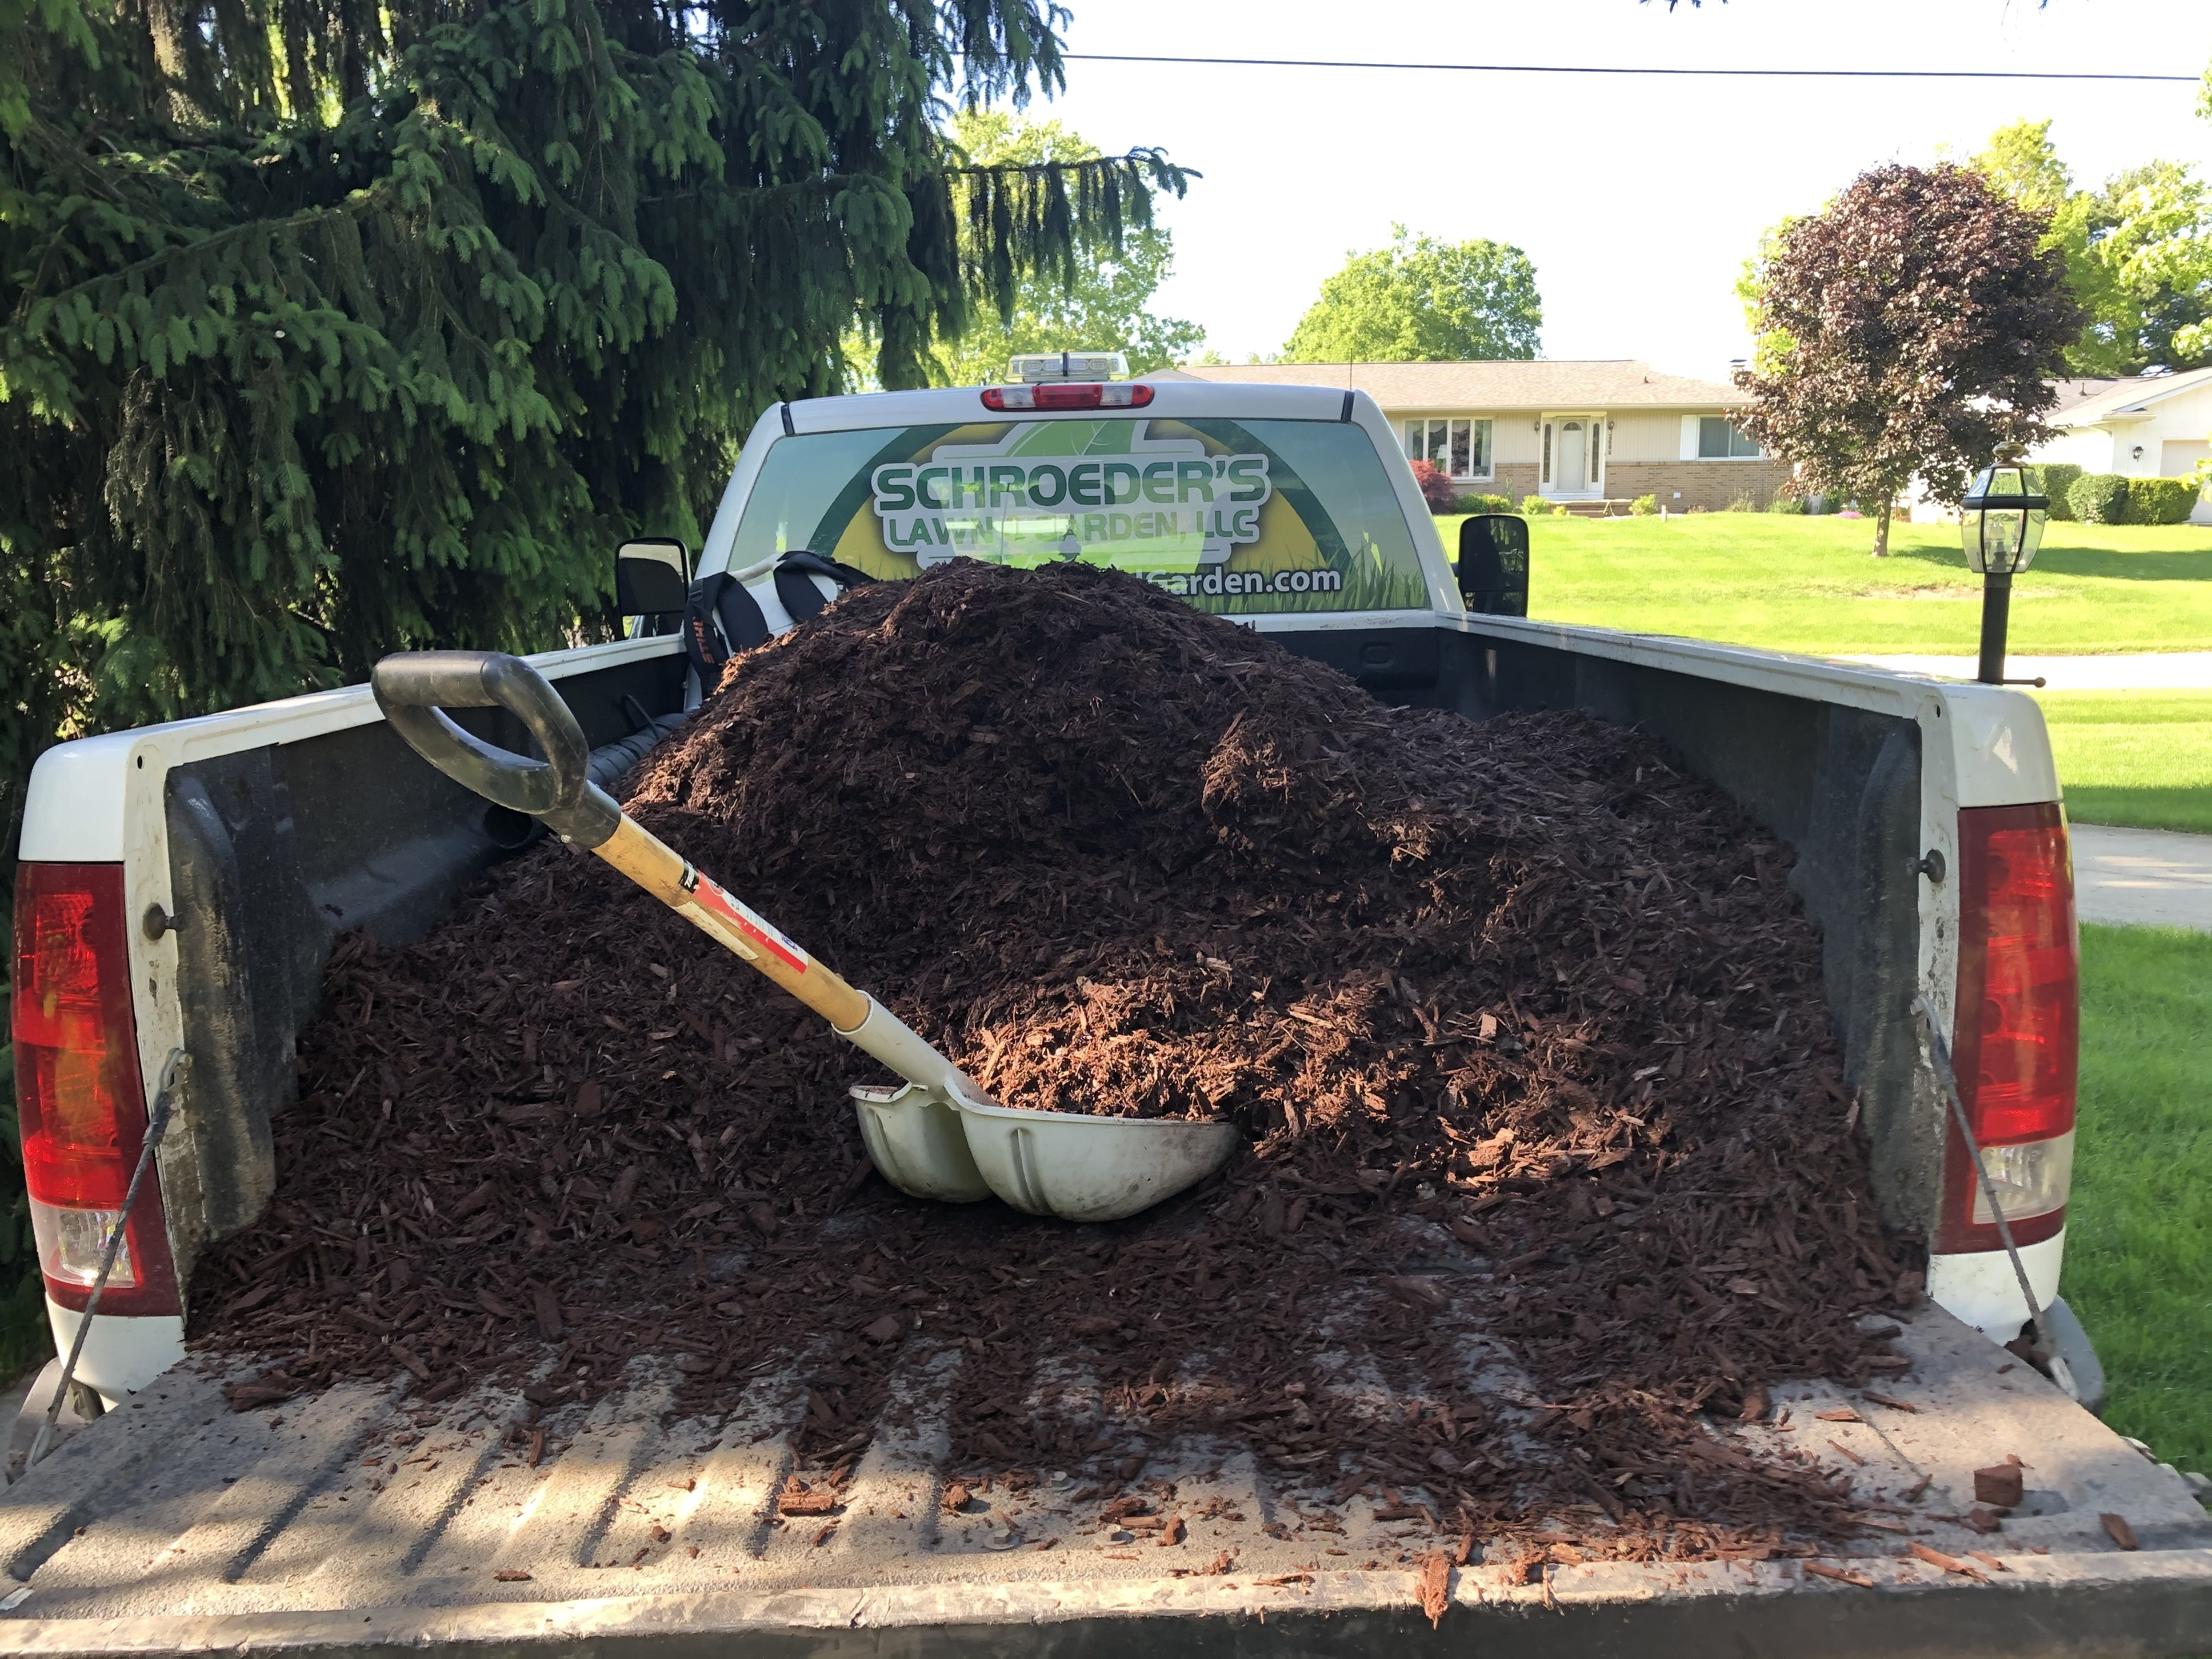 New mulch being laid in landscape bed at Lenawee home.